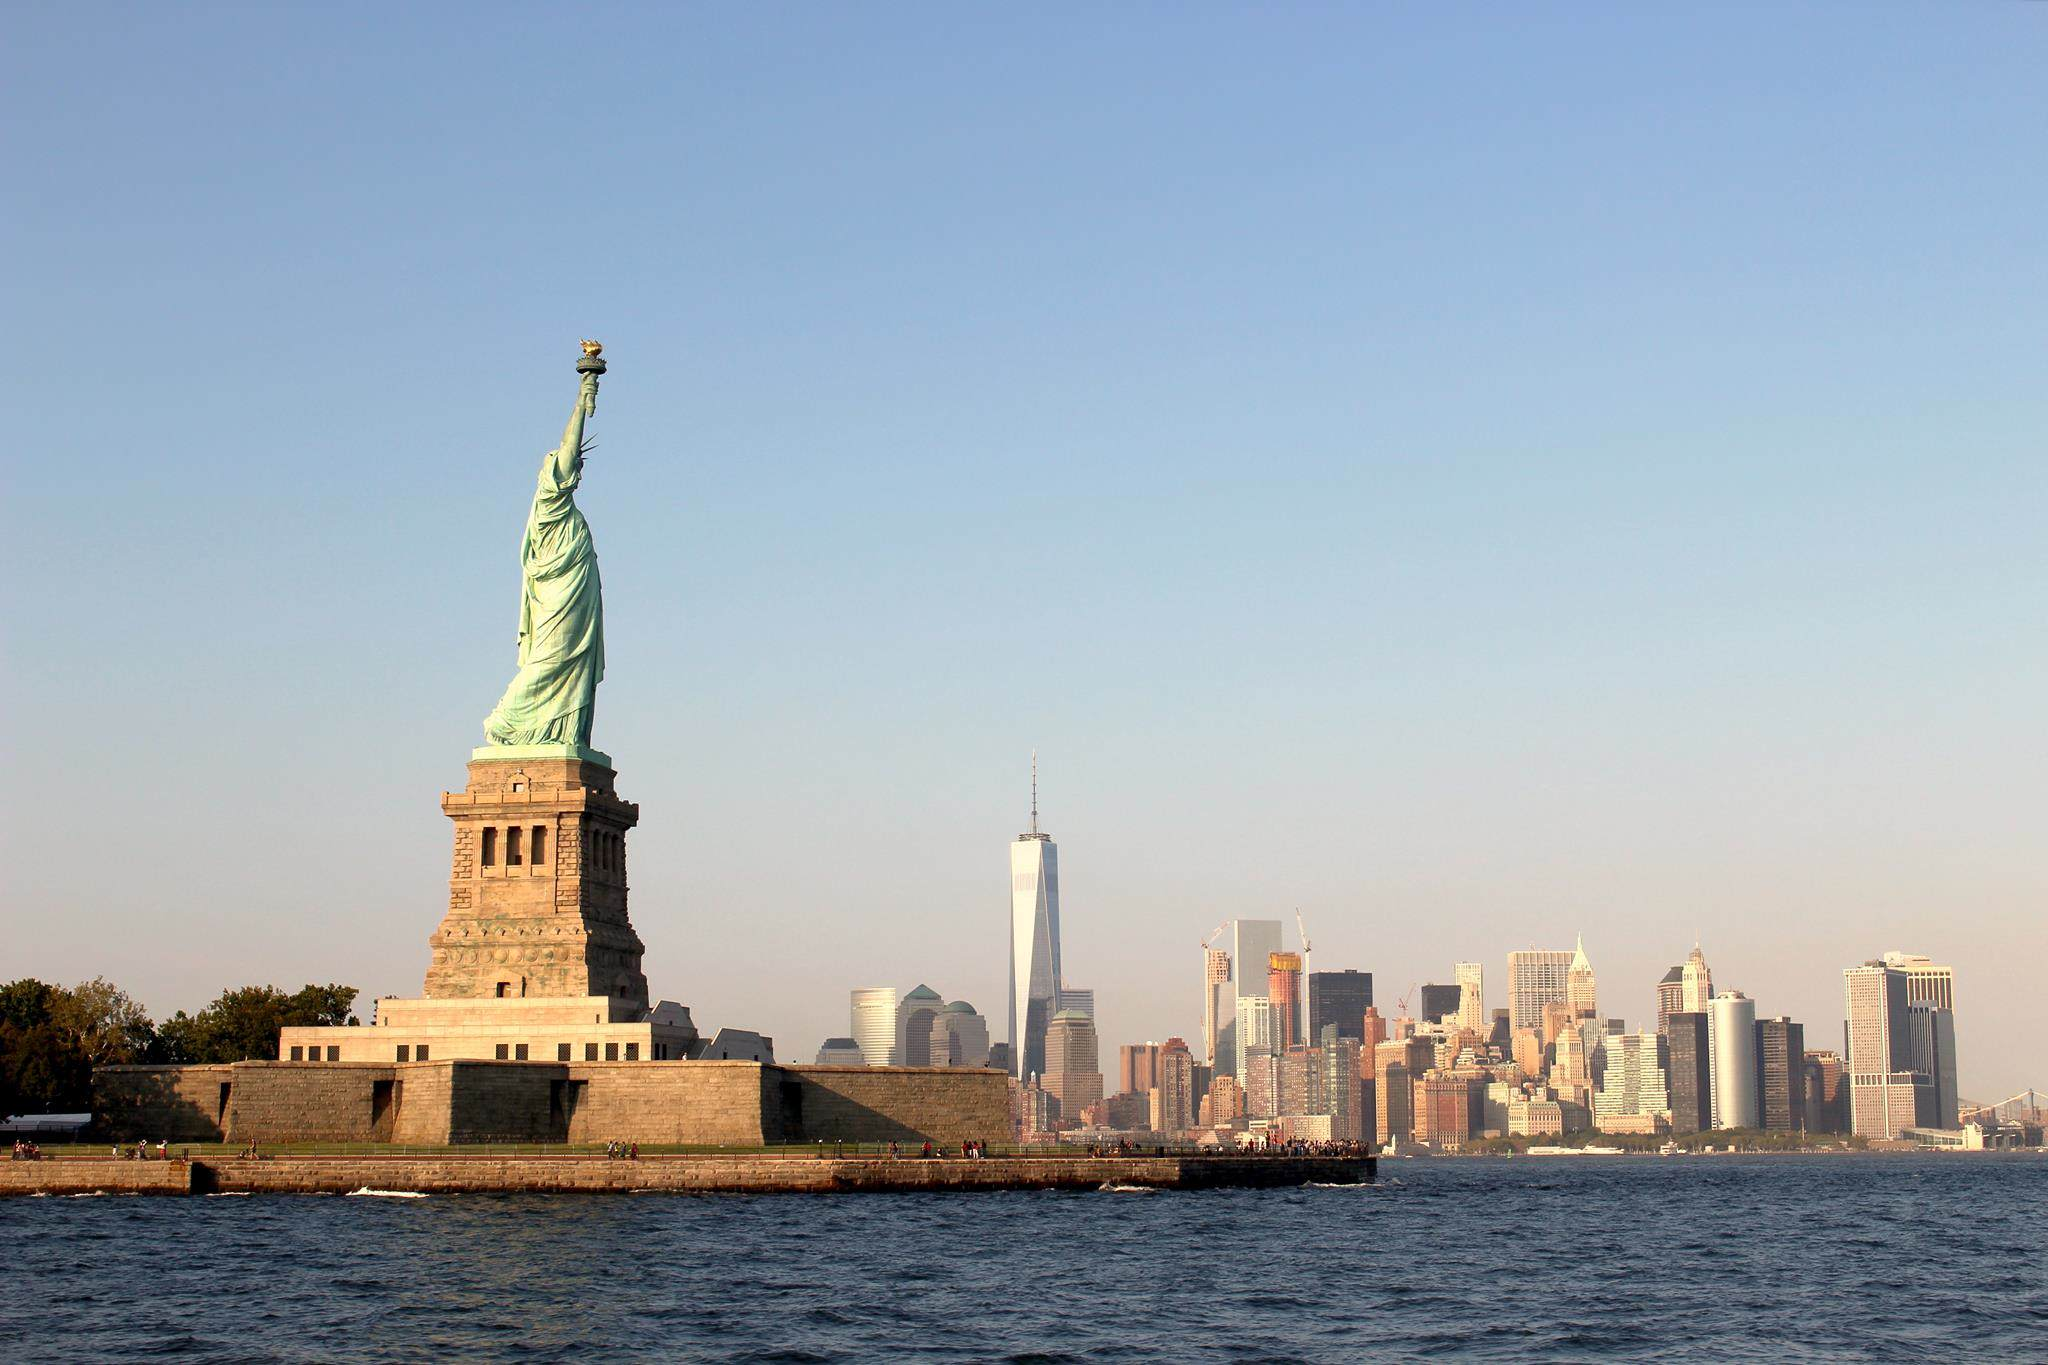 Proud to announce – New York is waiting for us